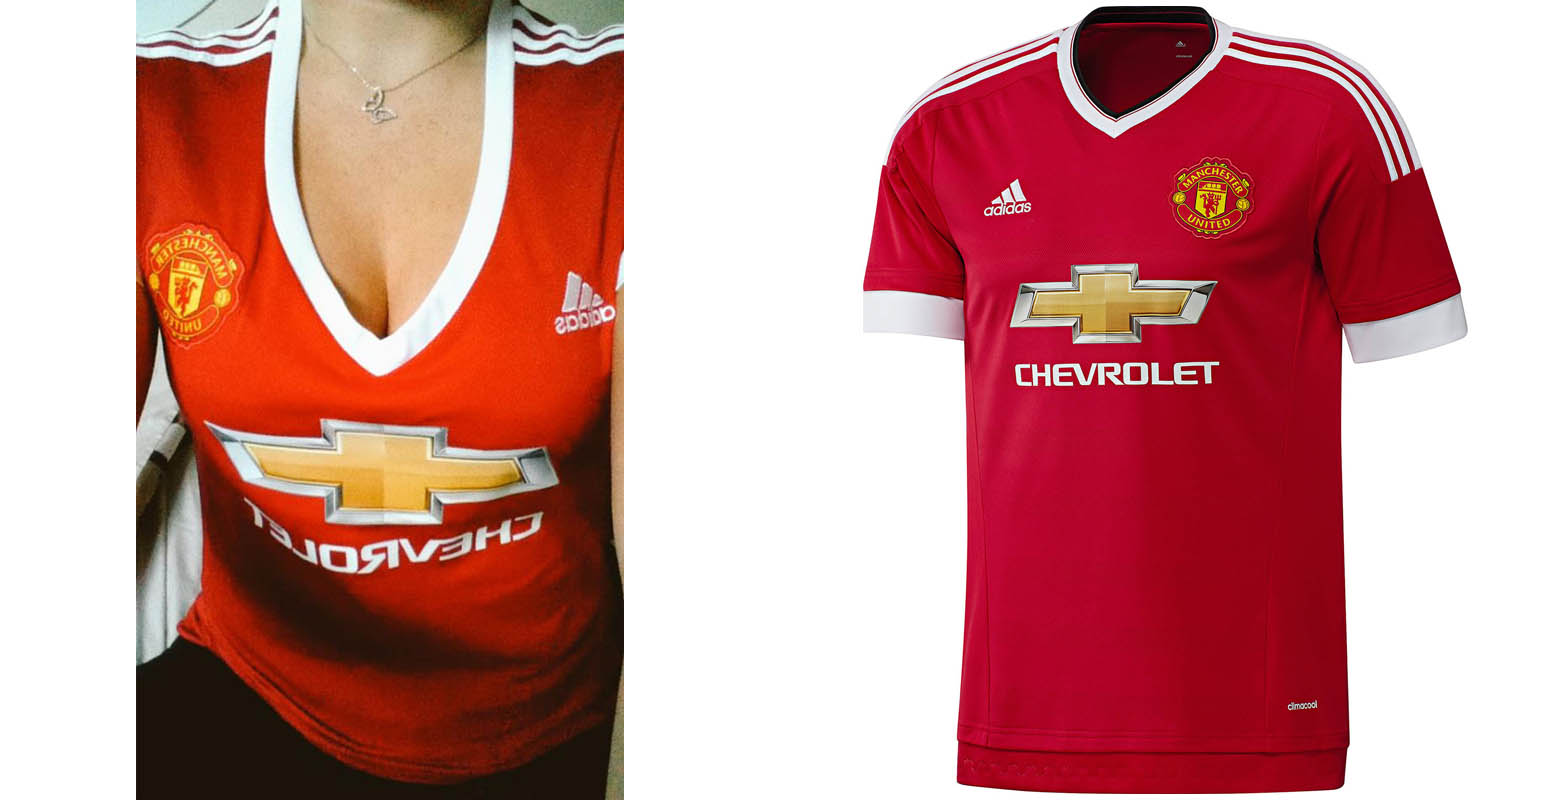 700154d2d Man United Adidas Shirts – EDGE Engineering and Consulting Limited